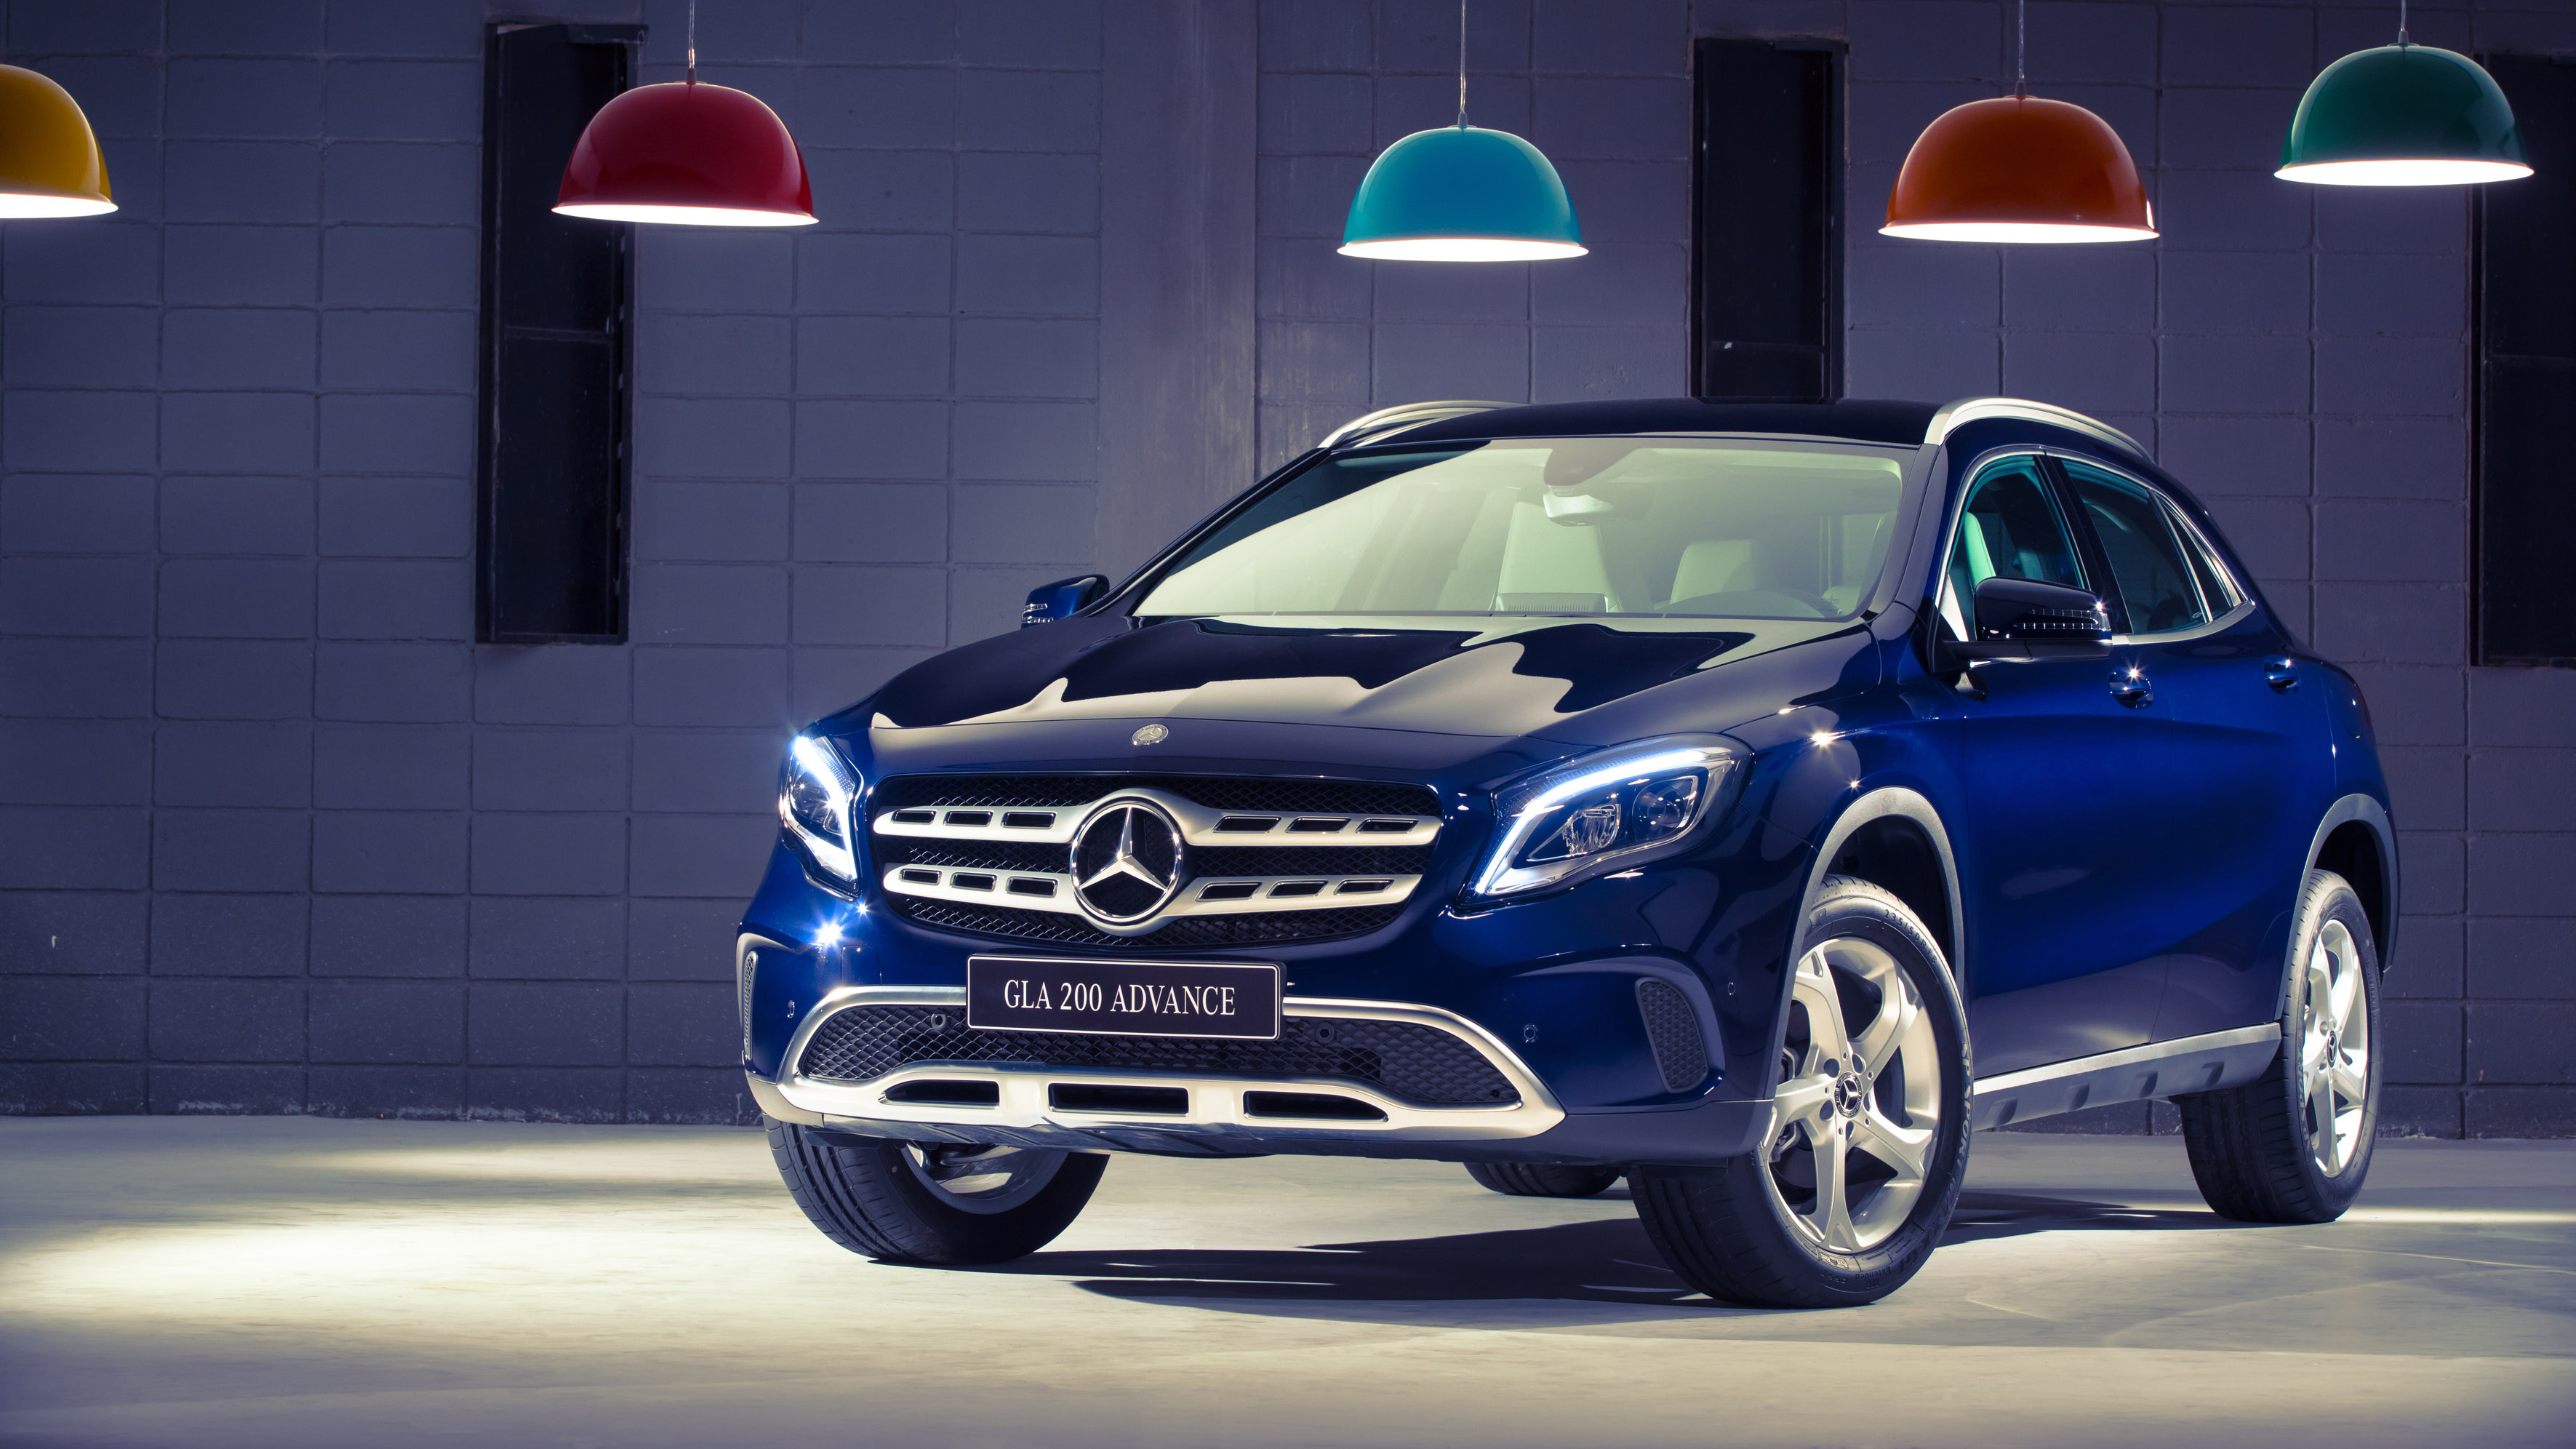 2017 Mercedes Benz GLA 200 Wallpaper | HD Car Wallpapers | ID #8287